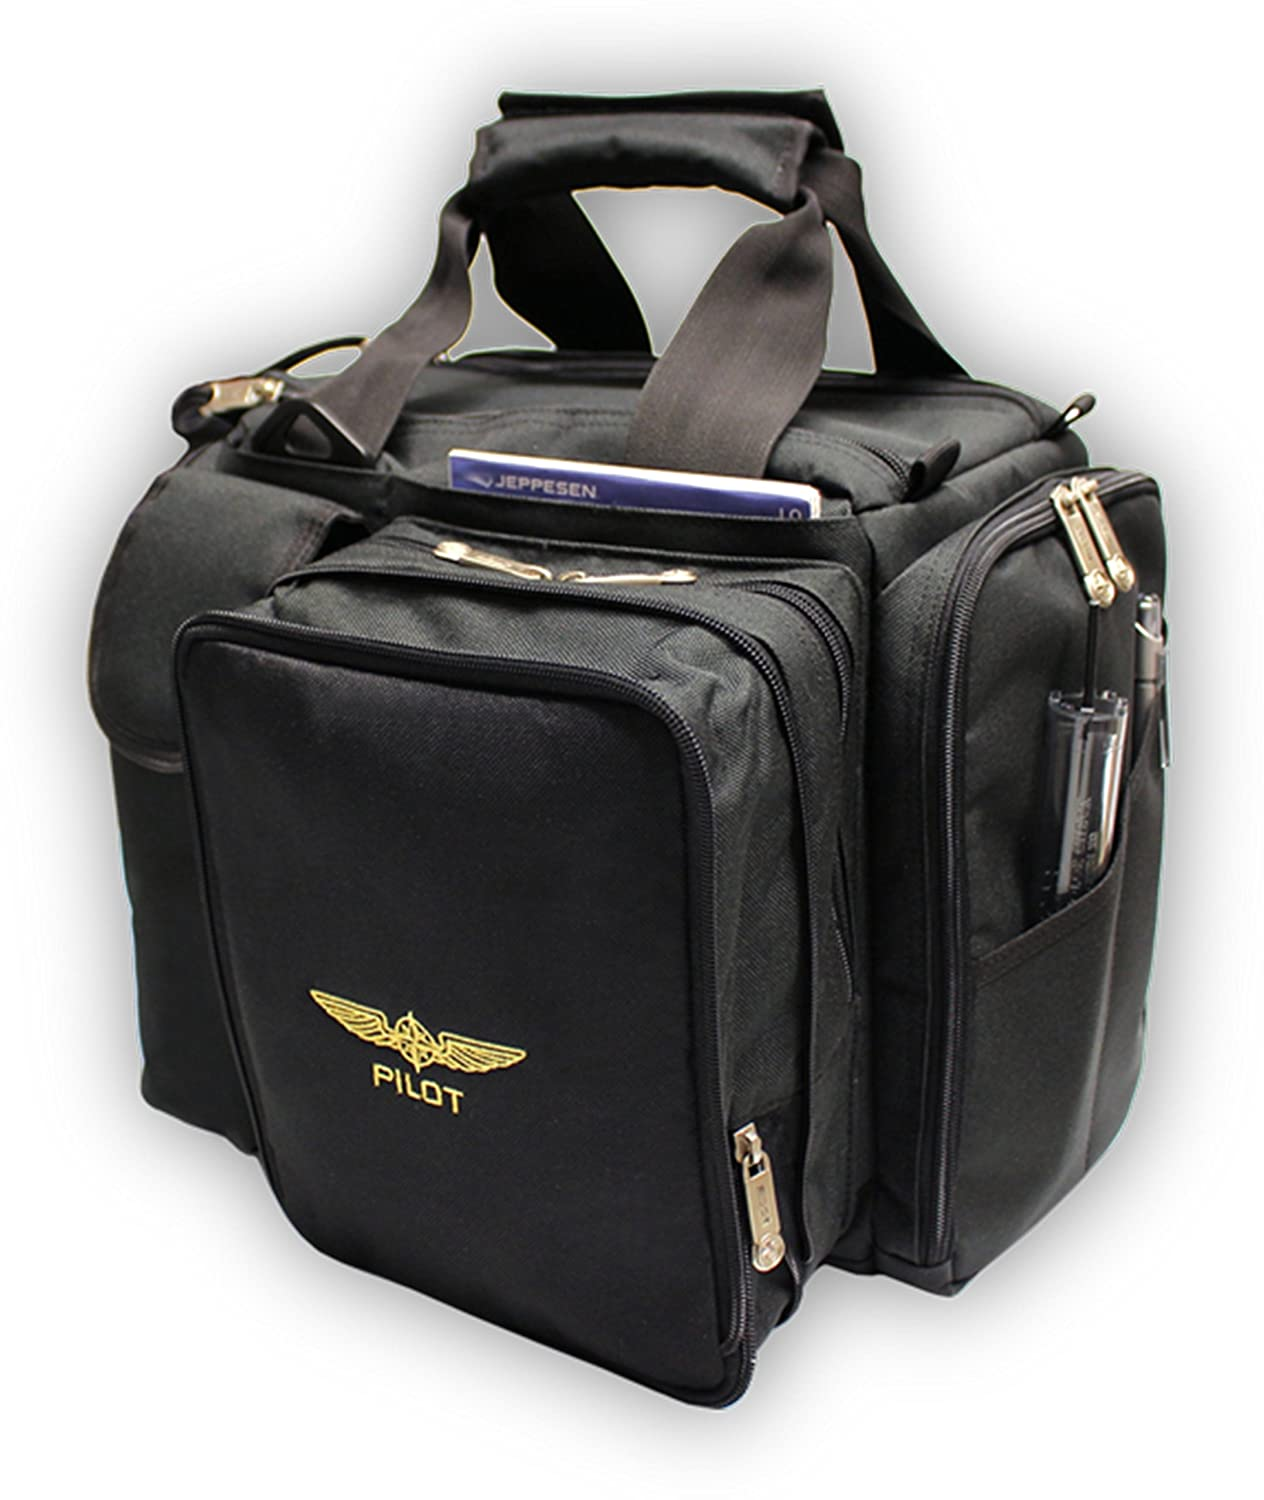 Design4Pilots - cross country Pilot bolsa de vuelo con funda de pilotos de la aviación Crosscountry